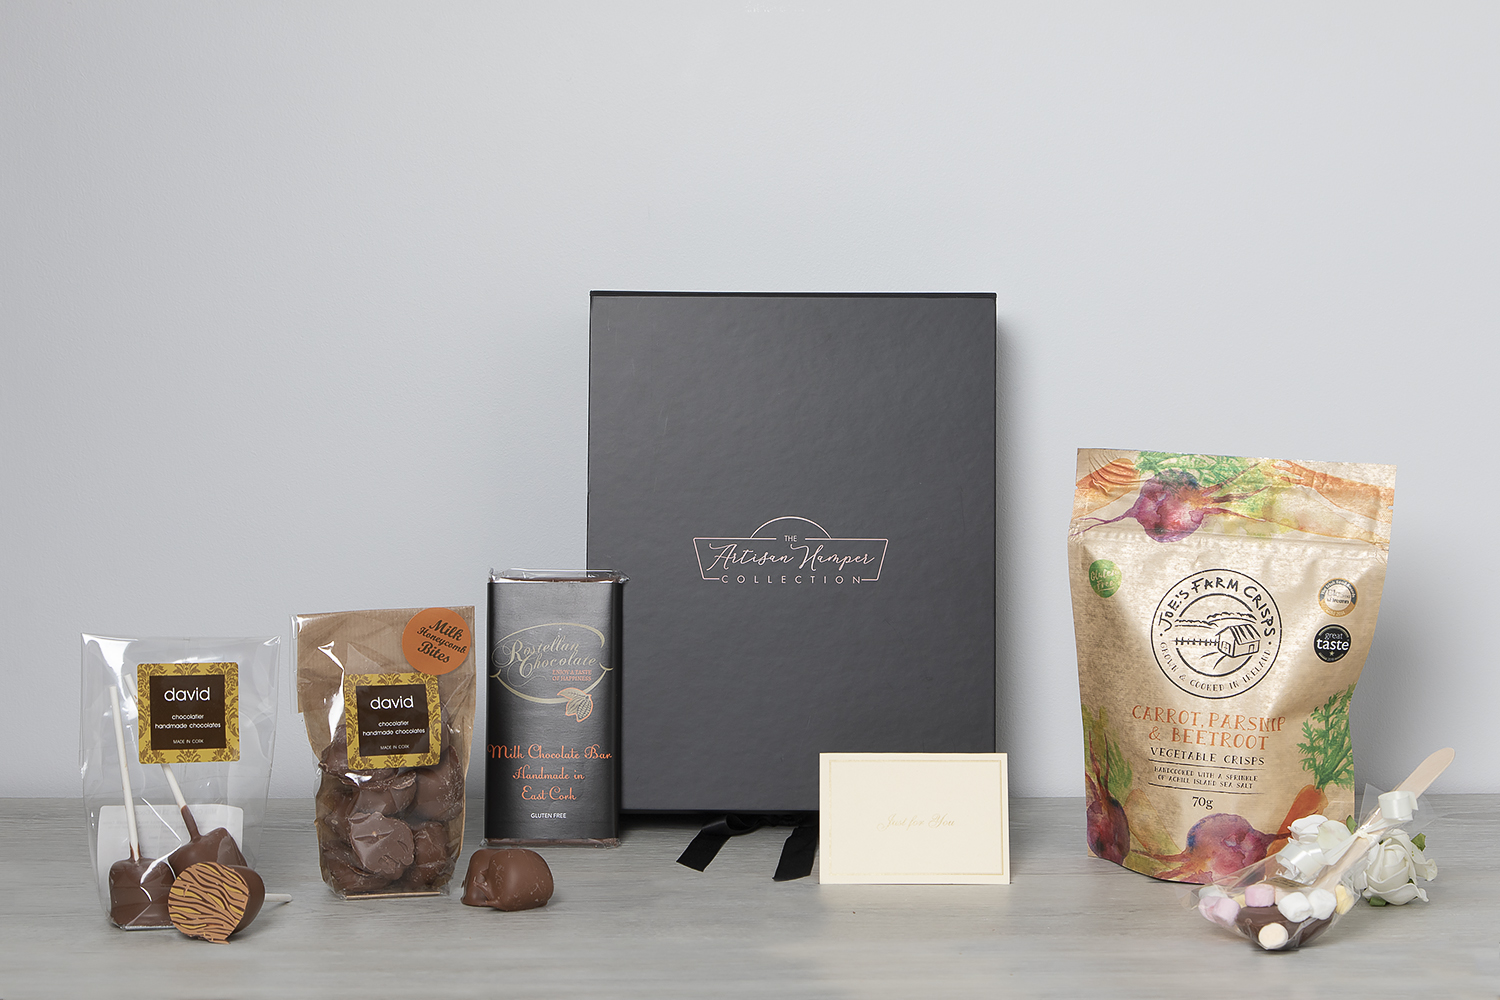 Gluten Free Treat Hamper for One - The artisan hamper collection